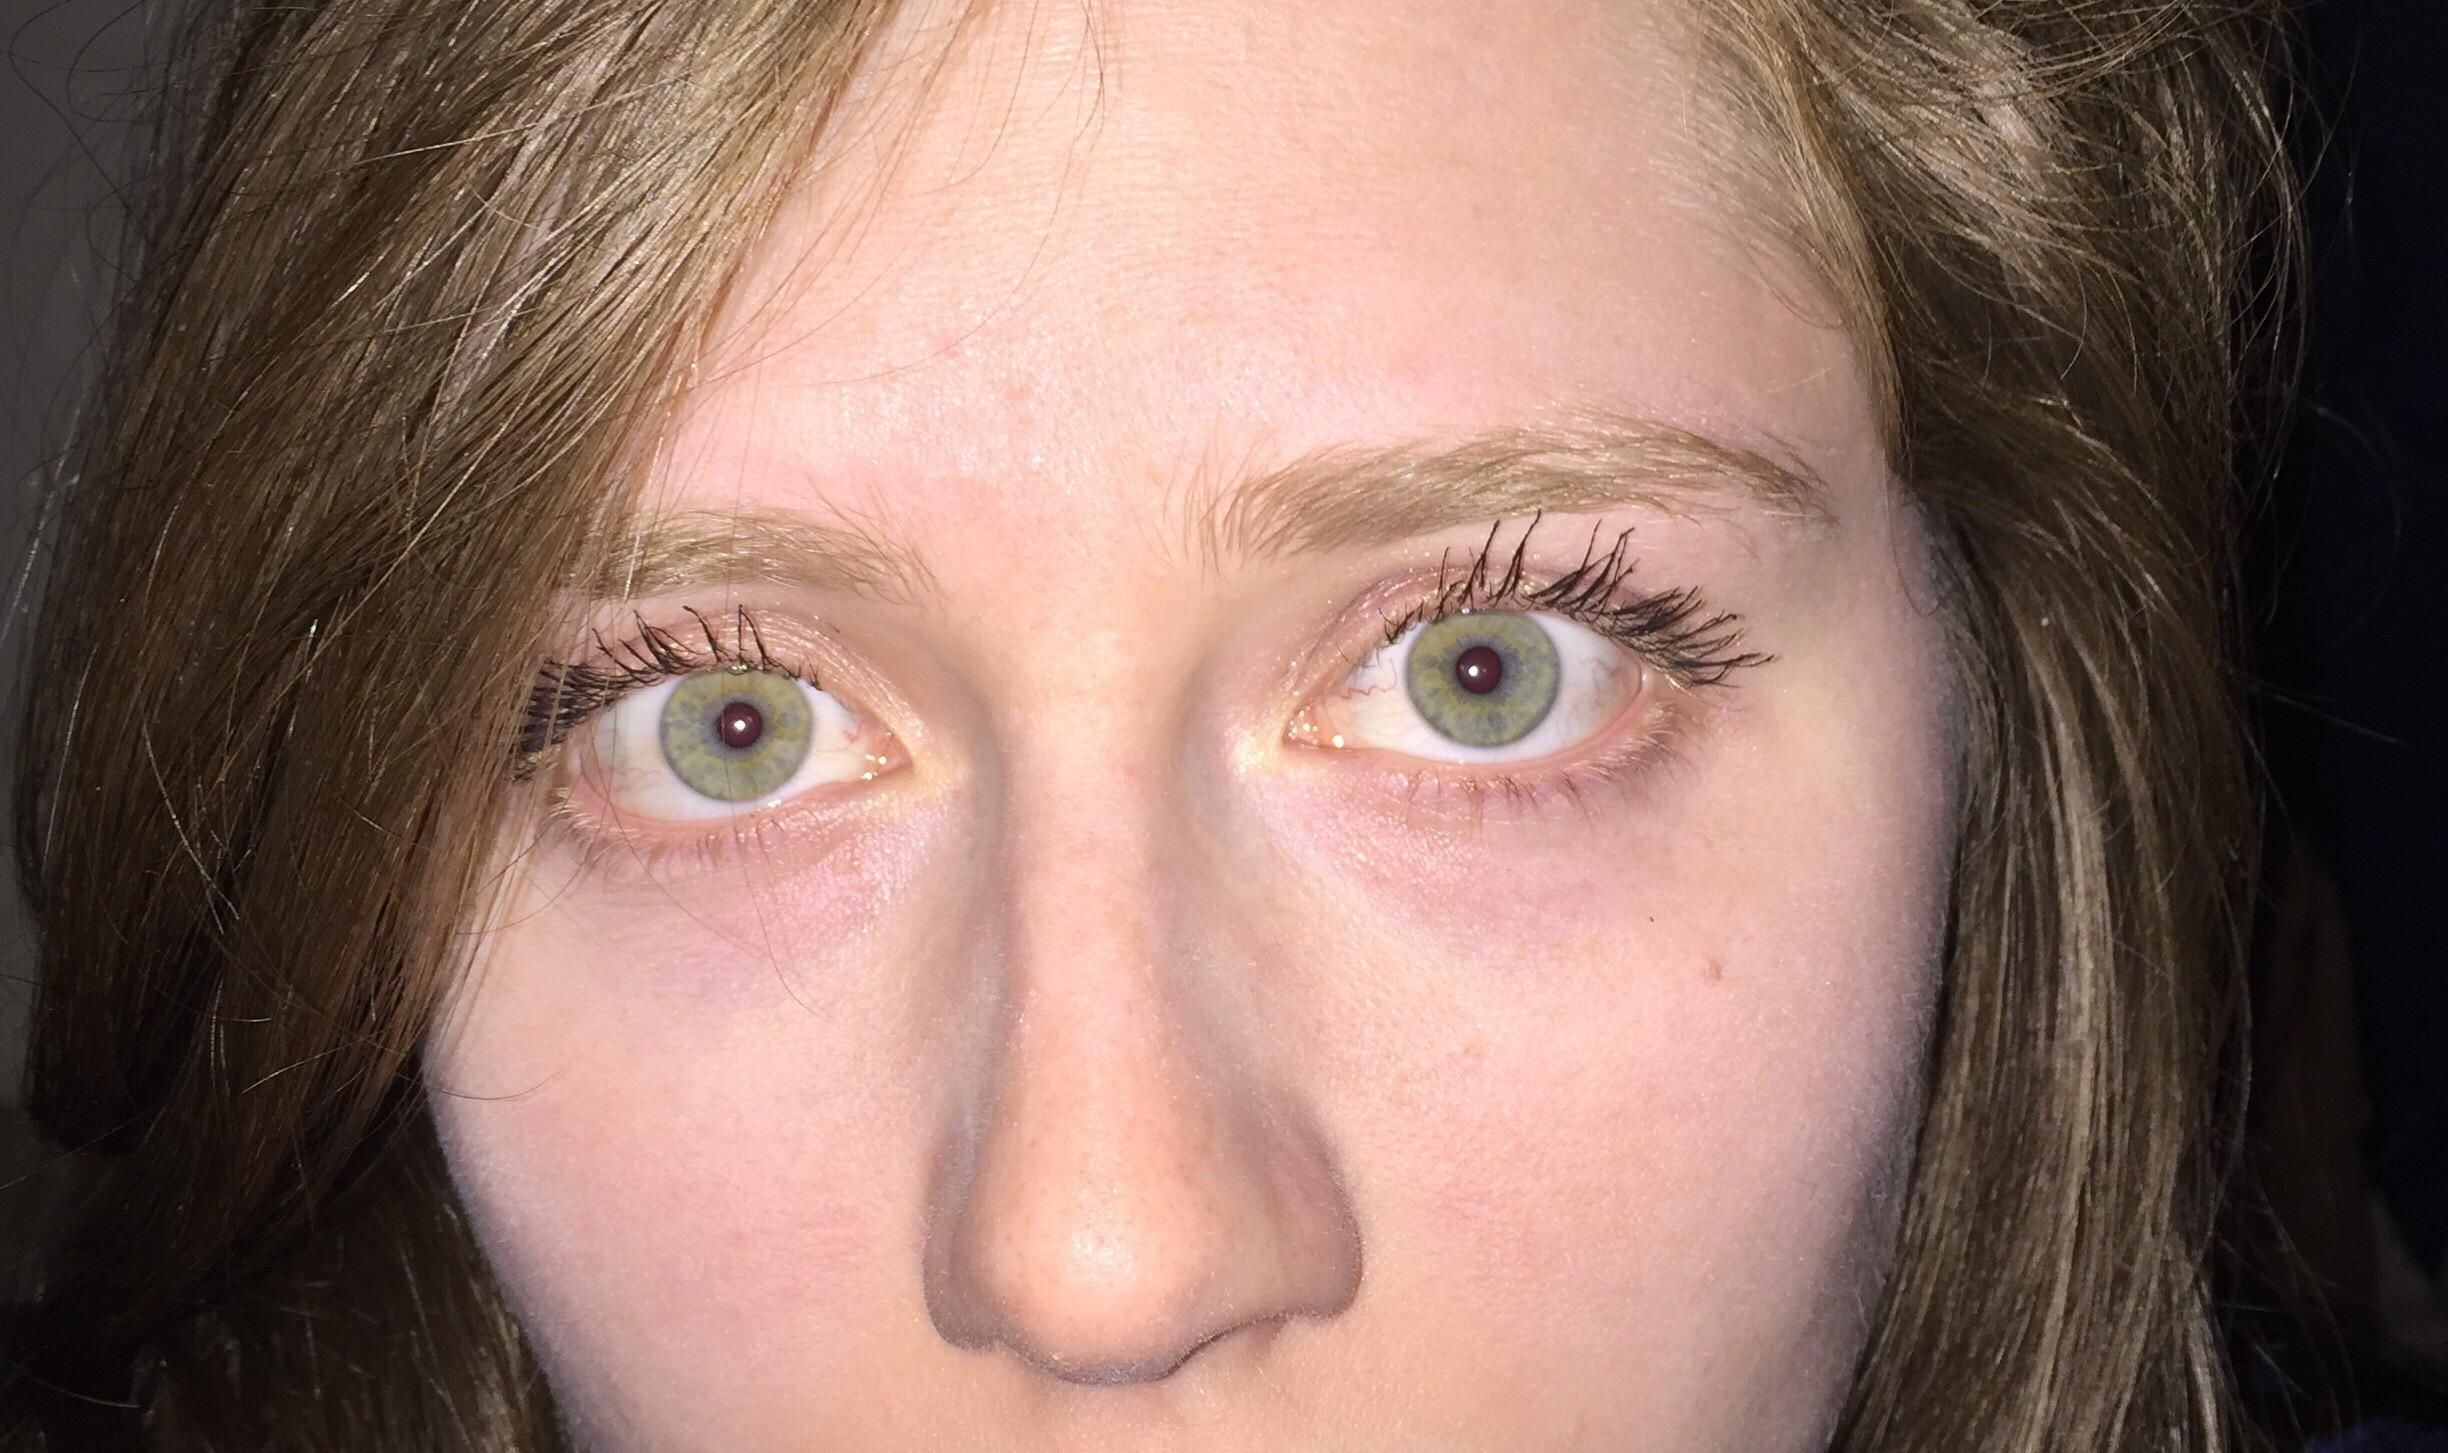 Green Eyes With No Brown At All Scandinavian Father Native American Mother No Filter Green Eyes Eyes Image